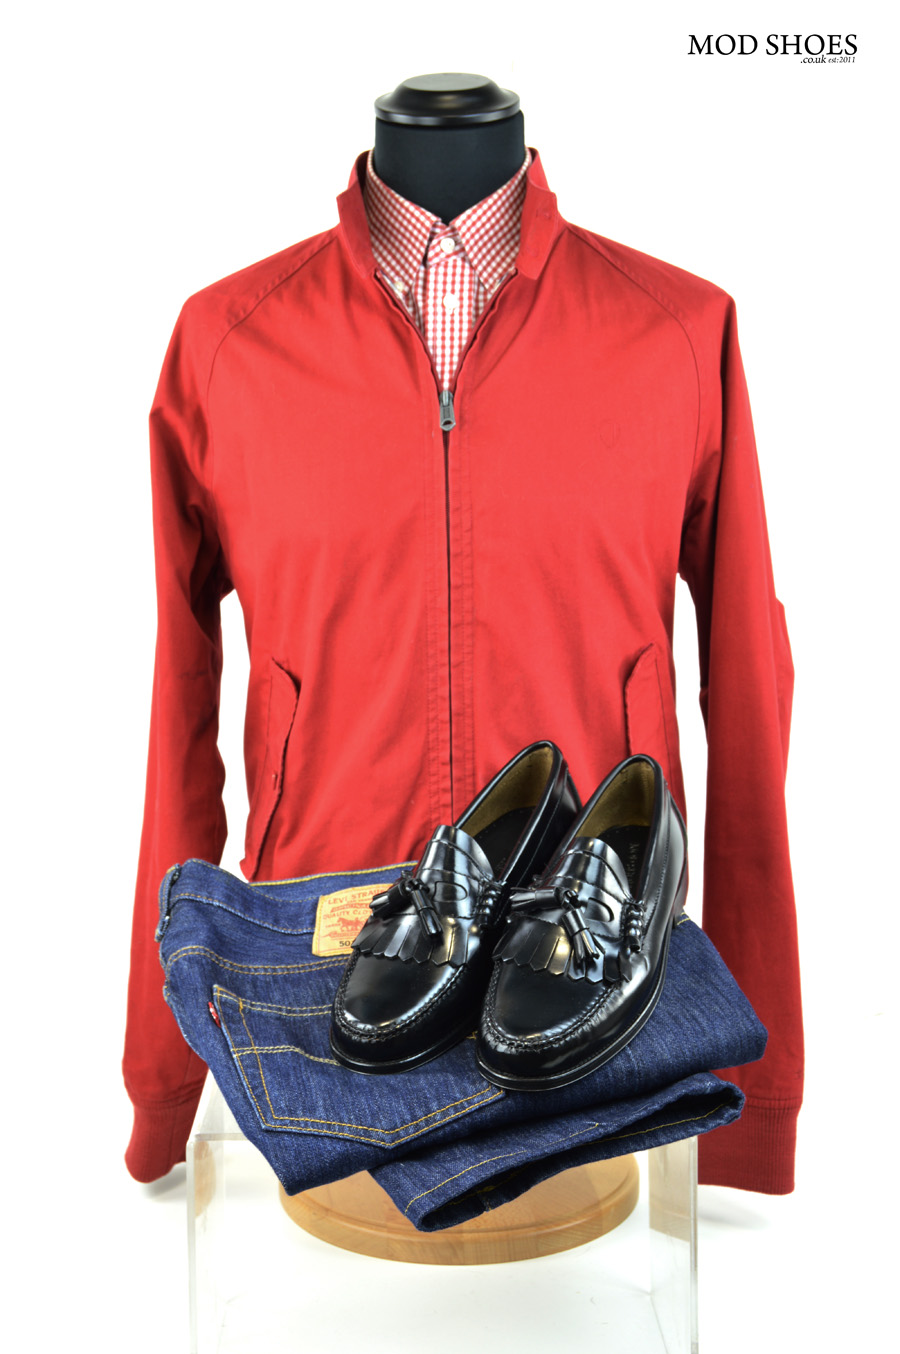 modshoes penny loafers the earls with jeans and red harrington